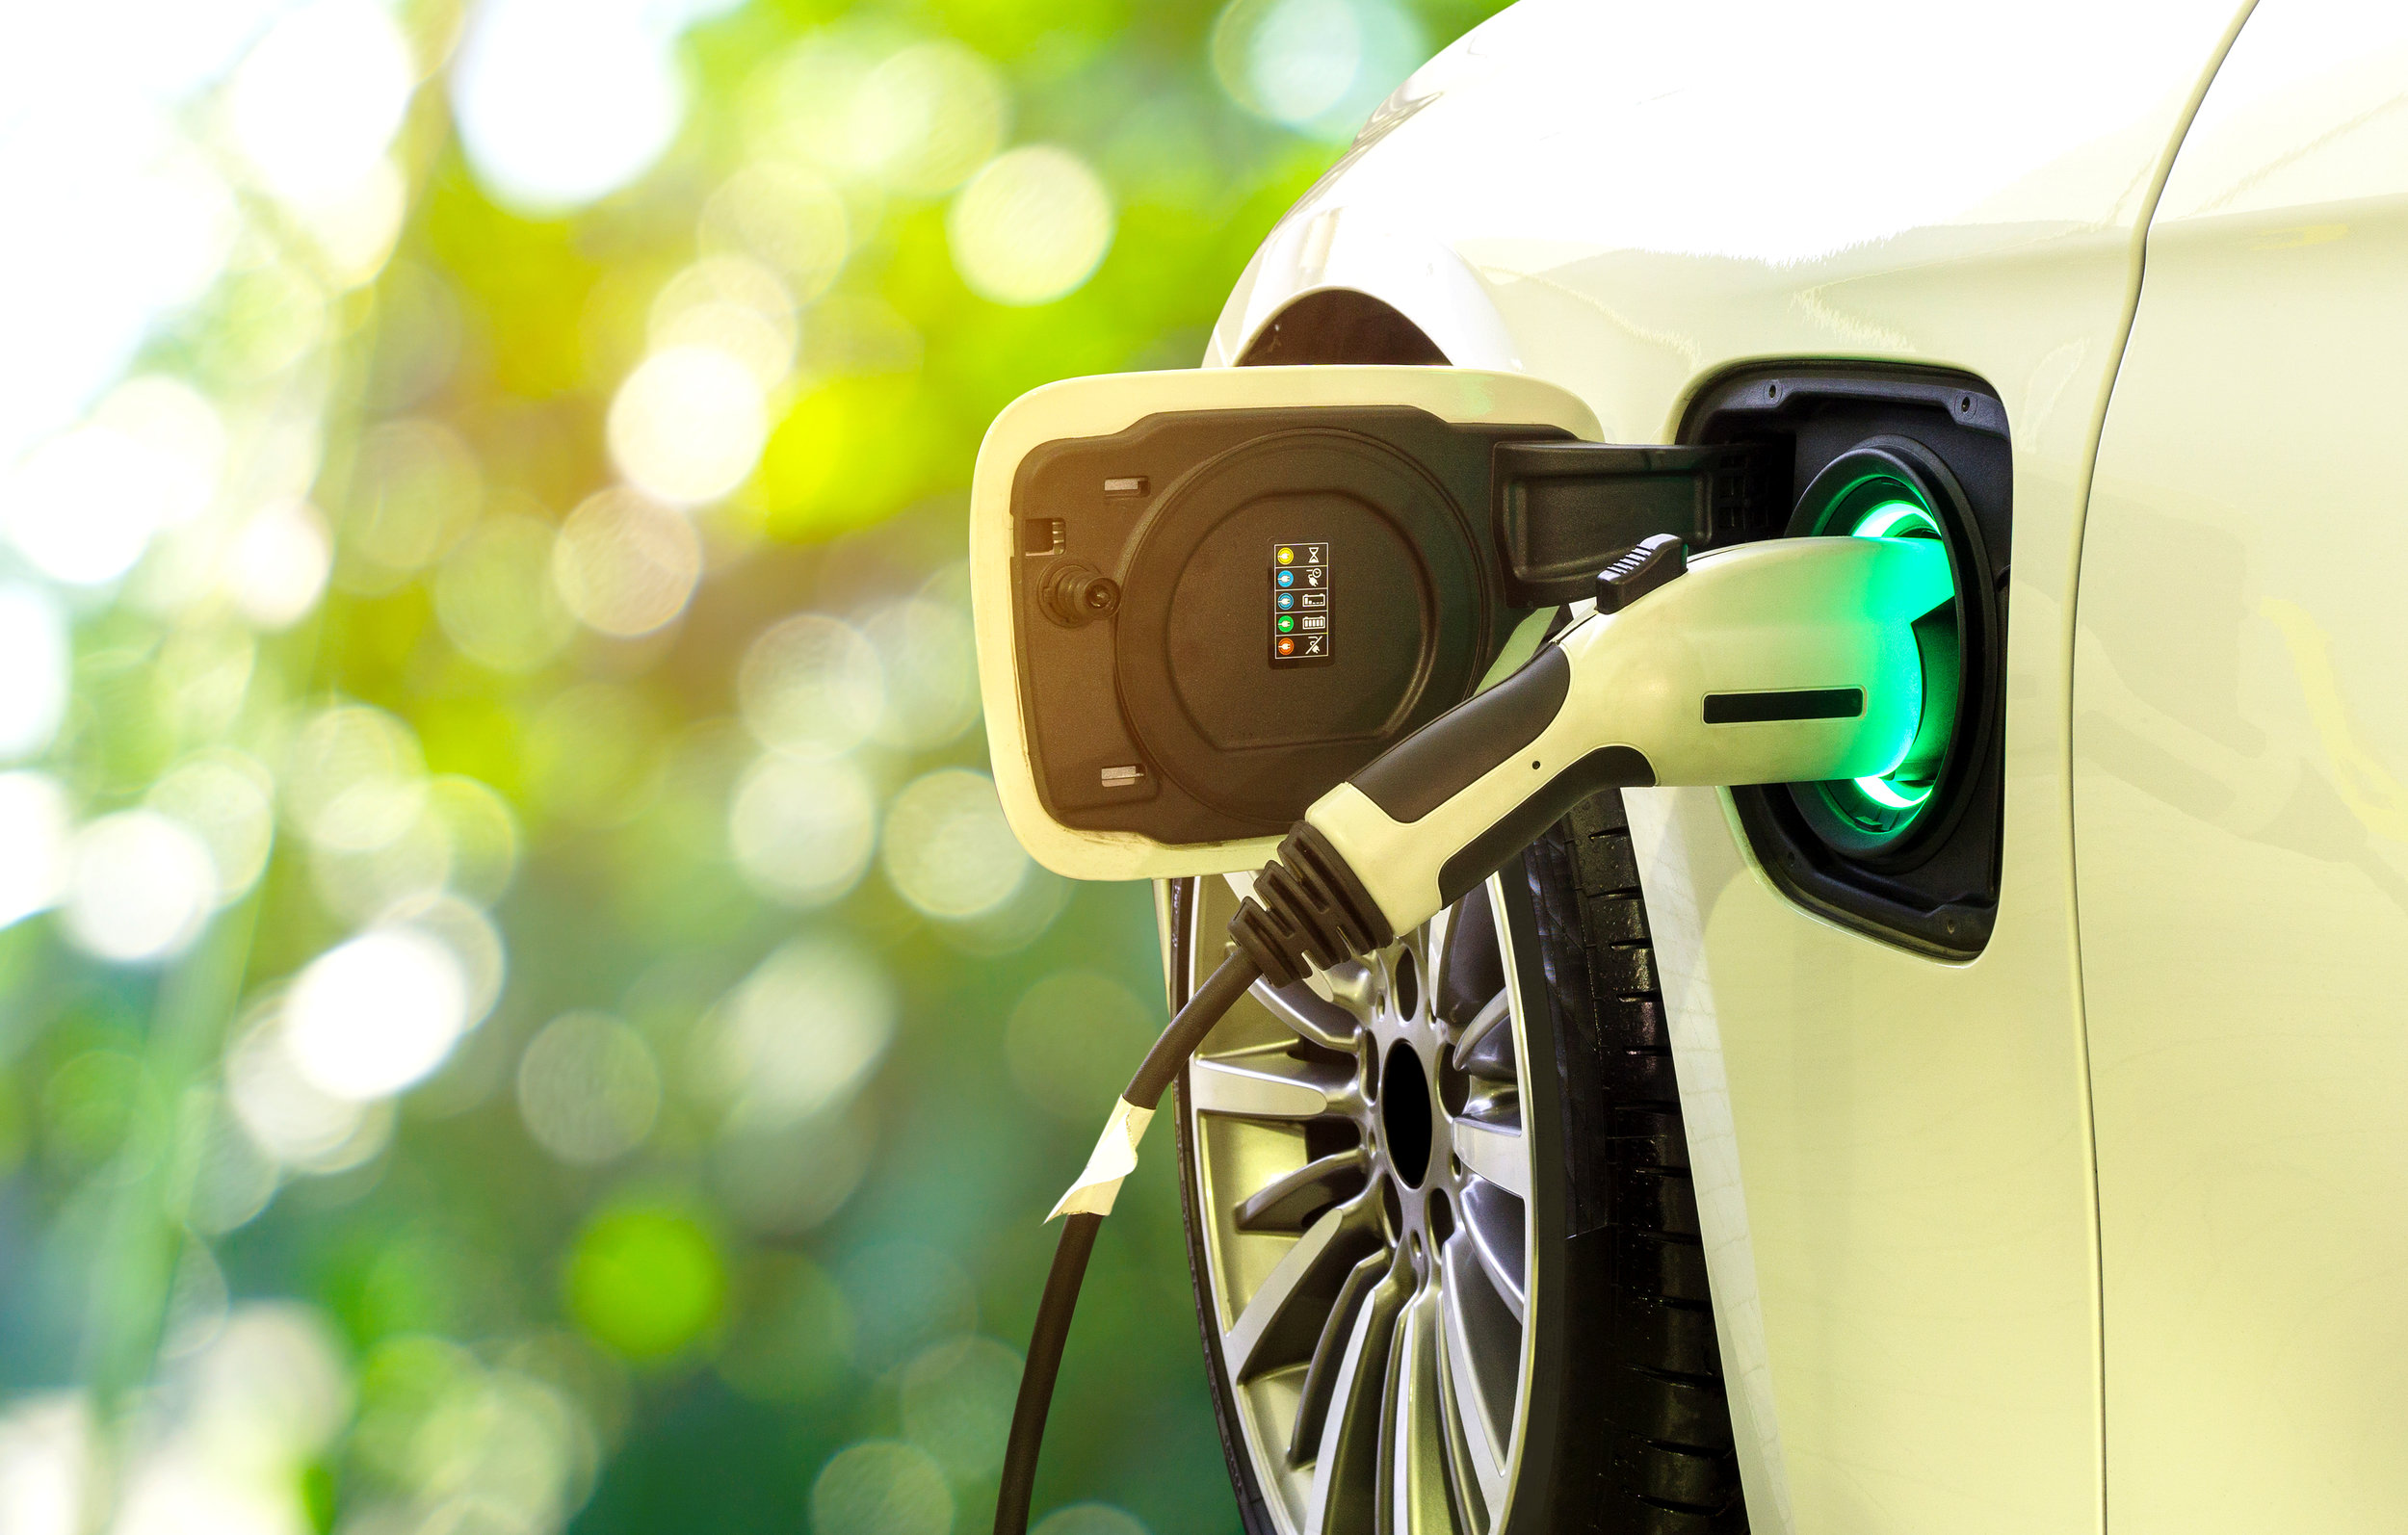 Electric Vehicle Charging Installation Edmonton AB | Electric Vehicle Charging Station Installation Sherwood Park AB | Electric Vehicle Charging Installation Fort Saskatchewan AB | Electric Vehicle Charging Station Installation St. Albert AB